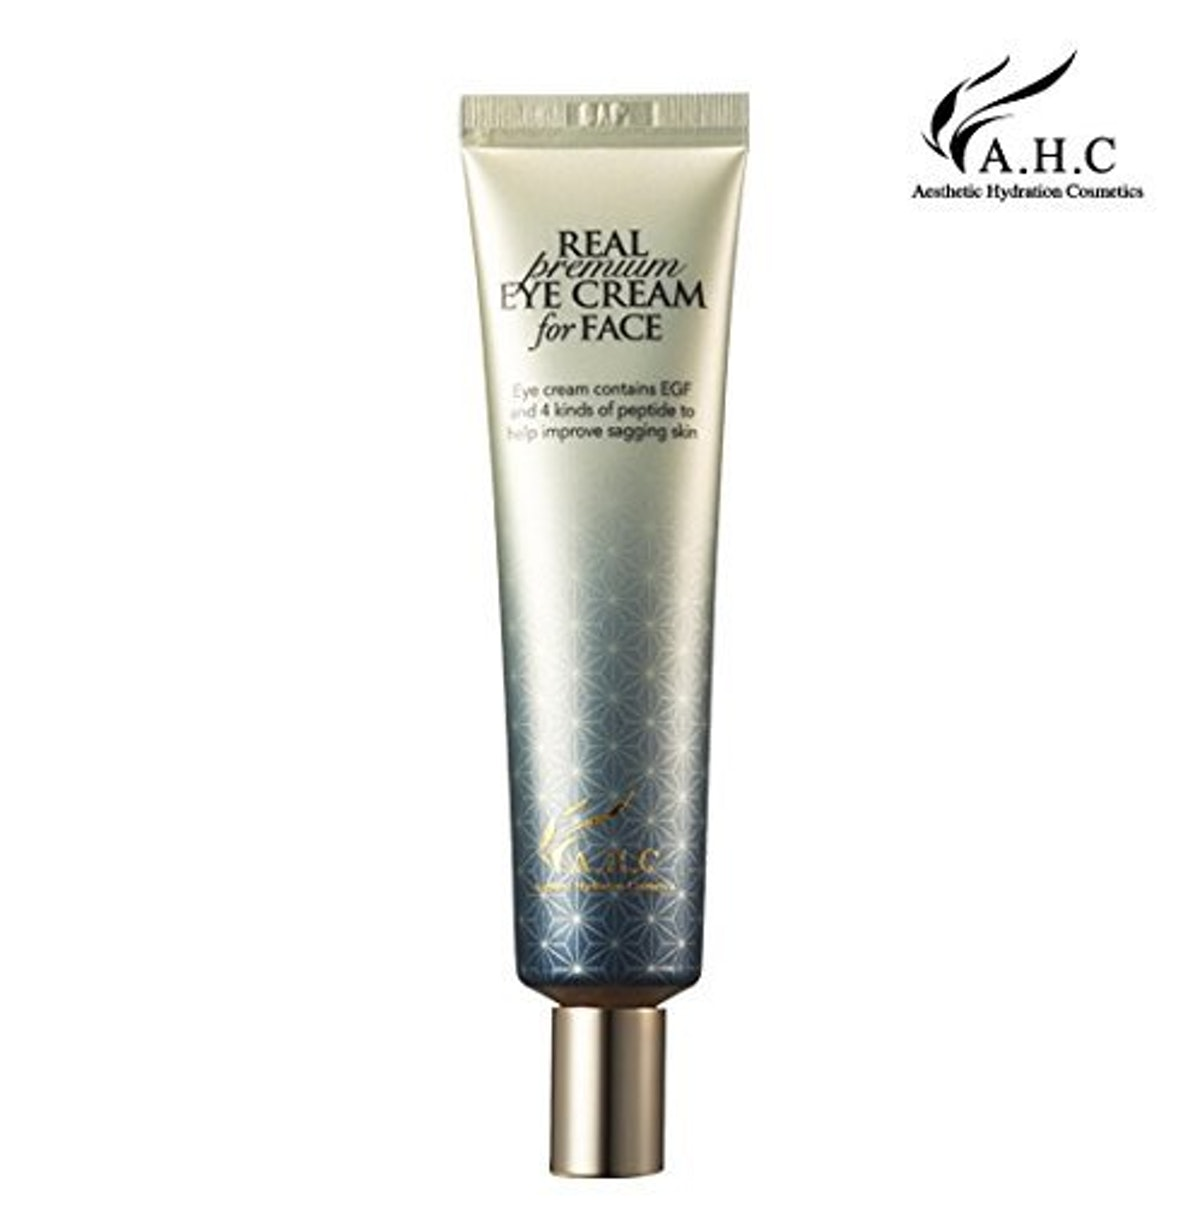 AHC Premium Real Eye Cream For Face